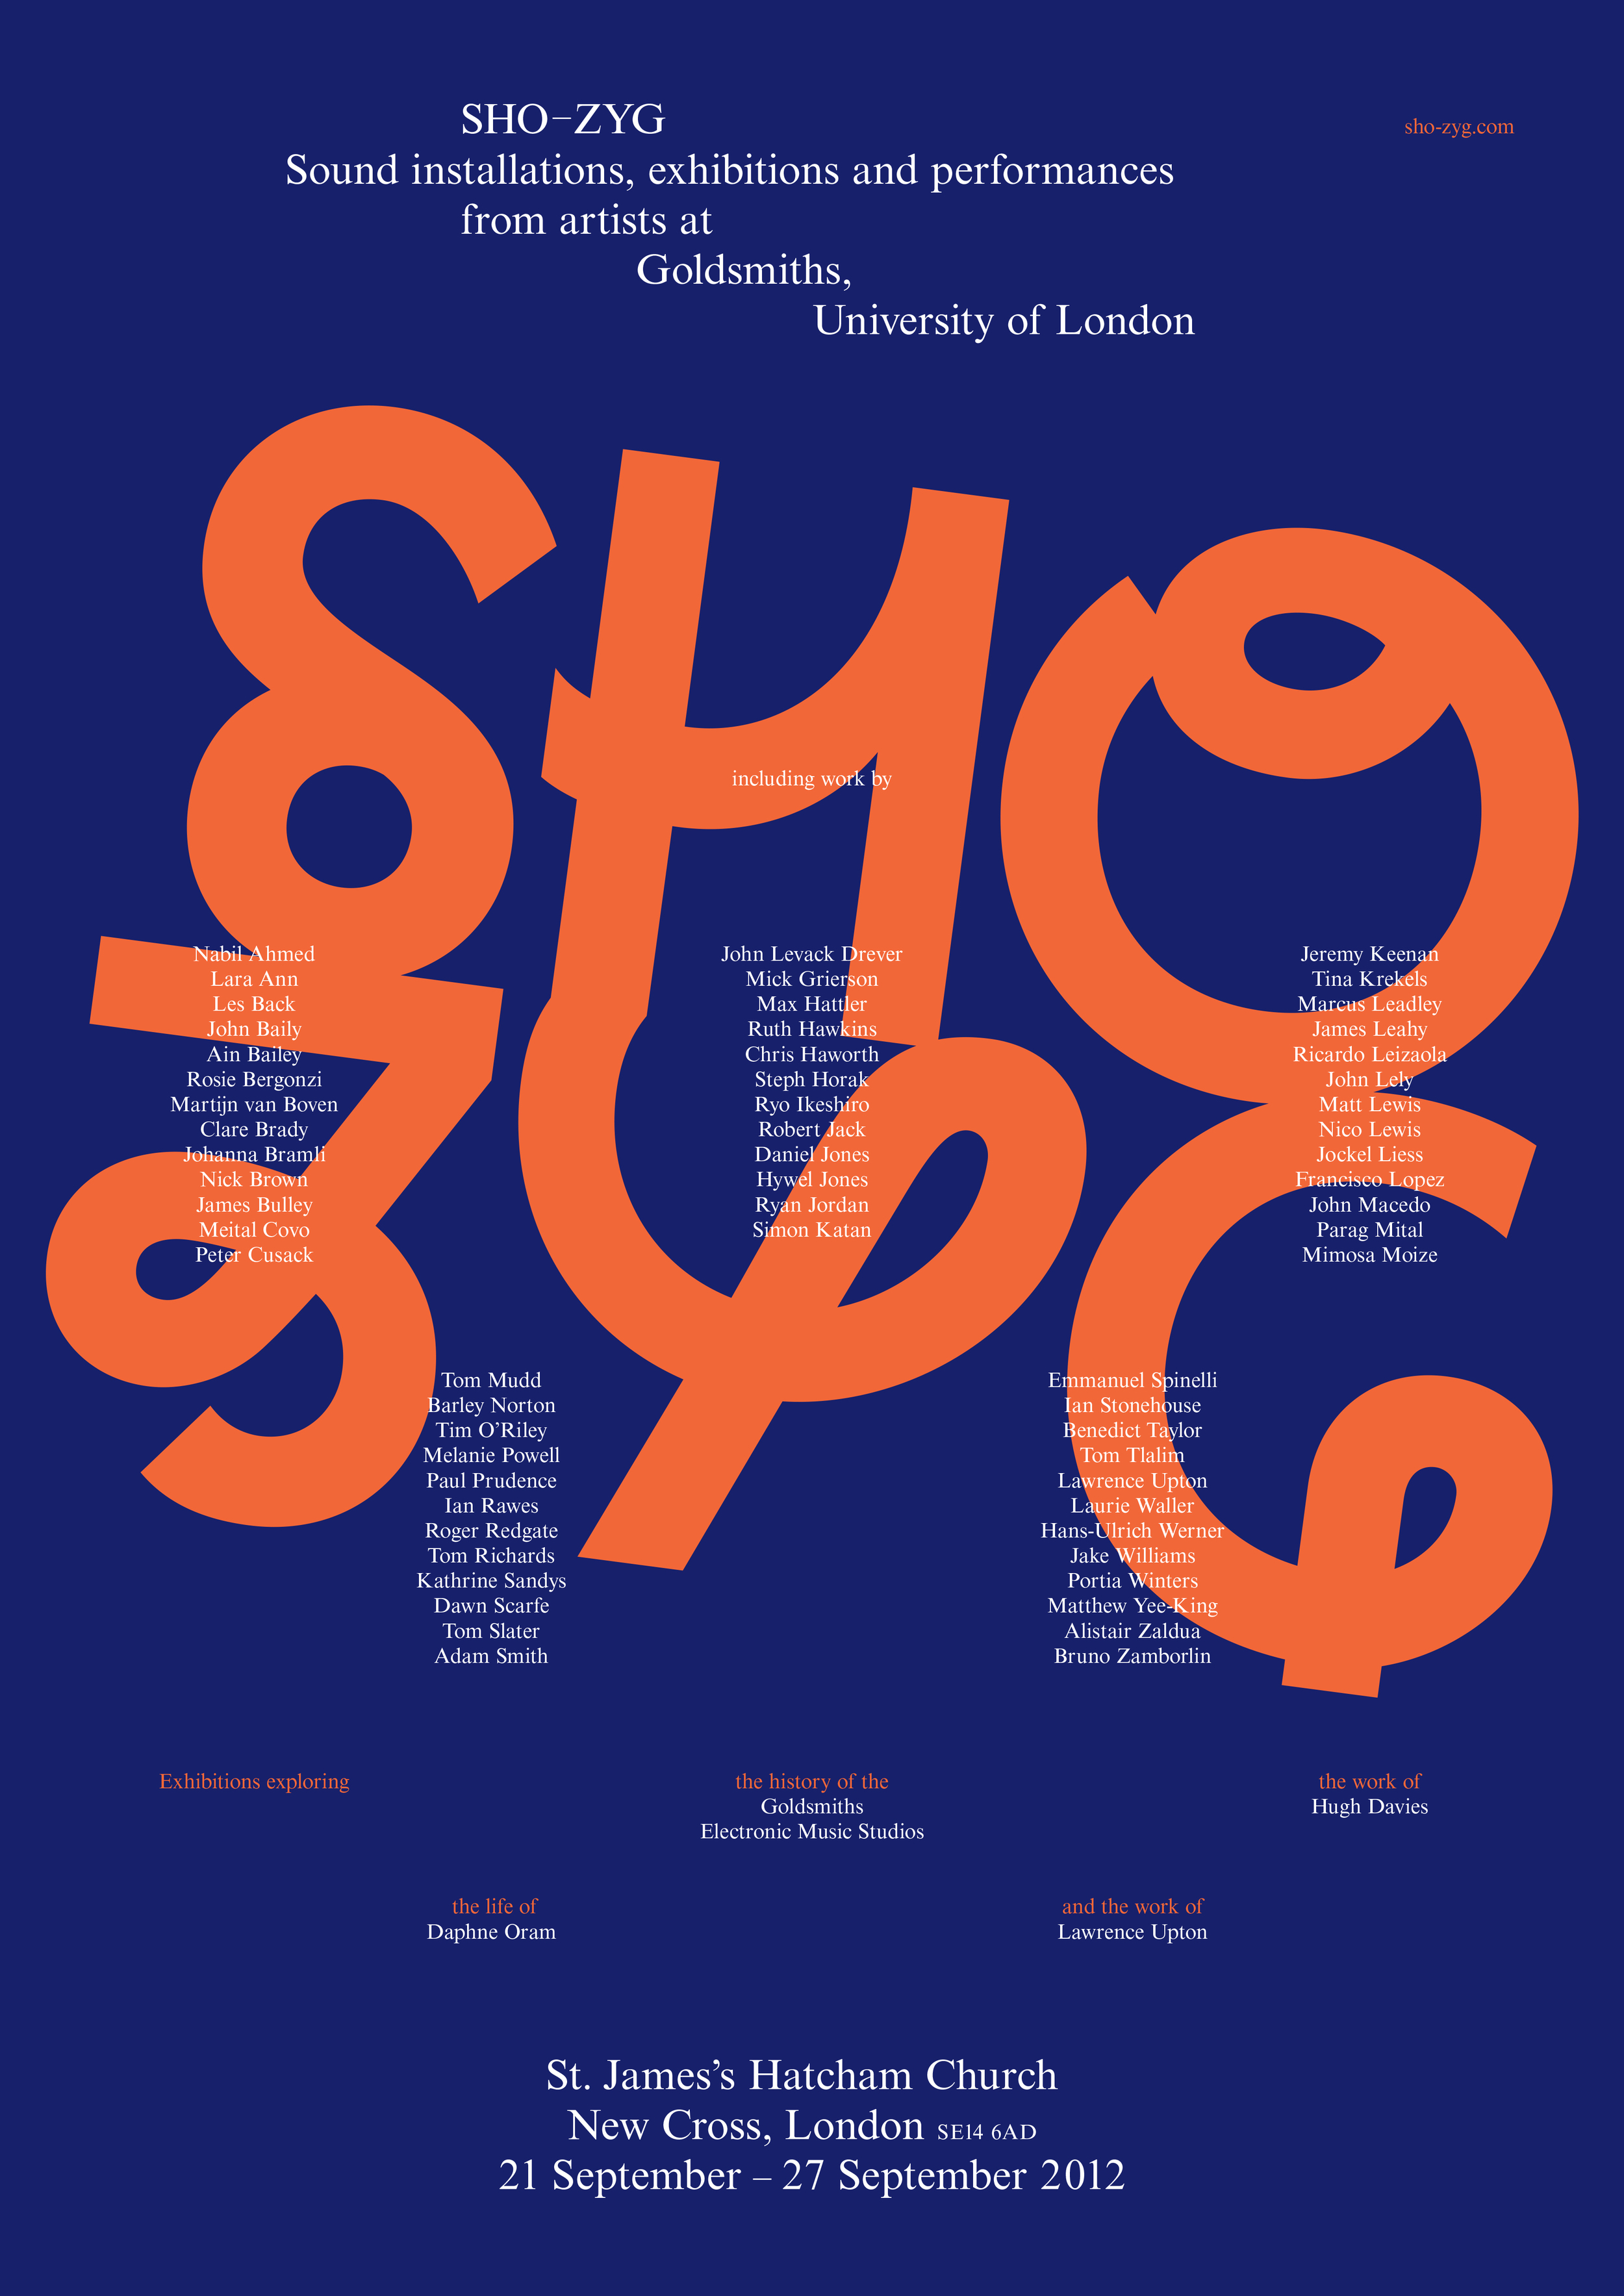 Sho-Zyg Exhibition Poster, 2012